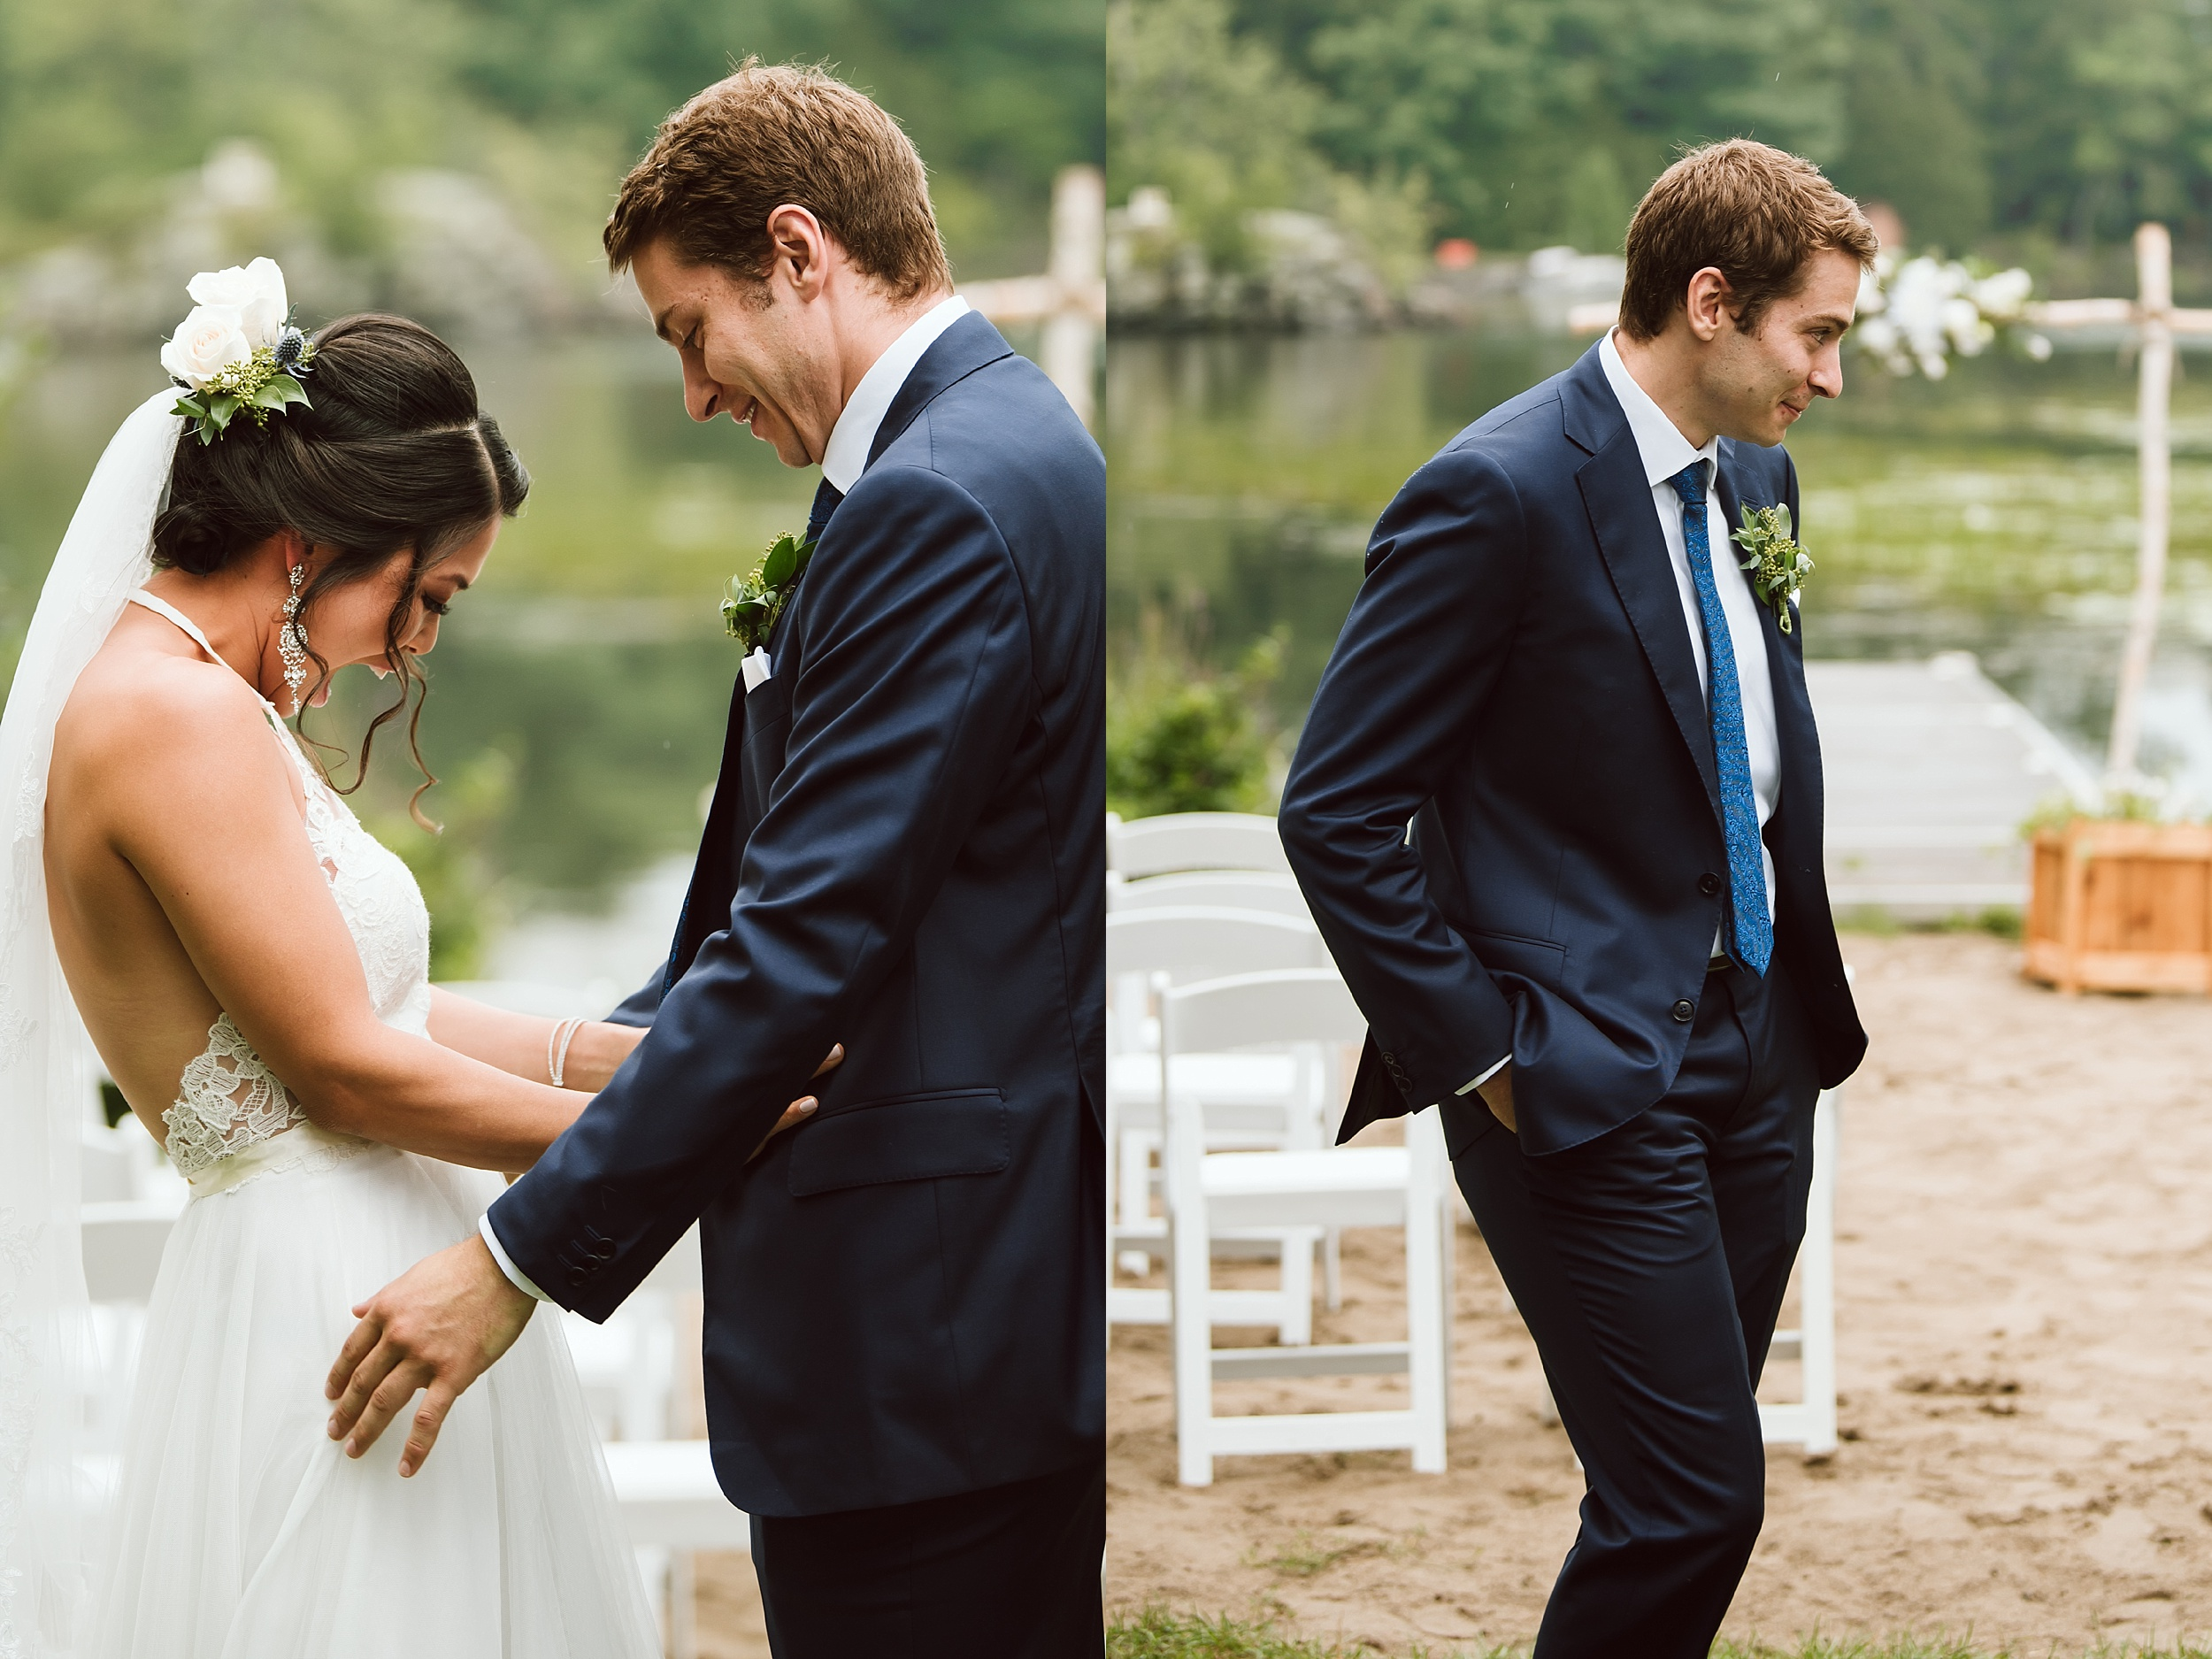 Muskoka_Wedding_Photographer_Gravenhurst0020.jpg